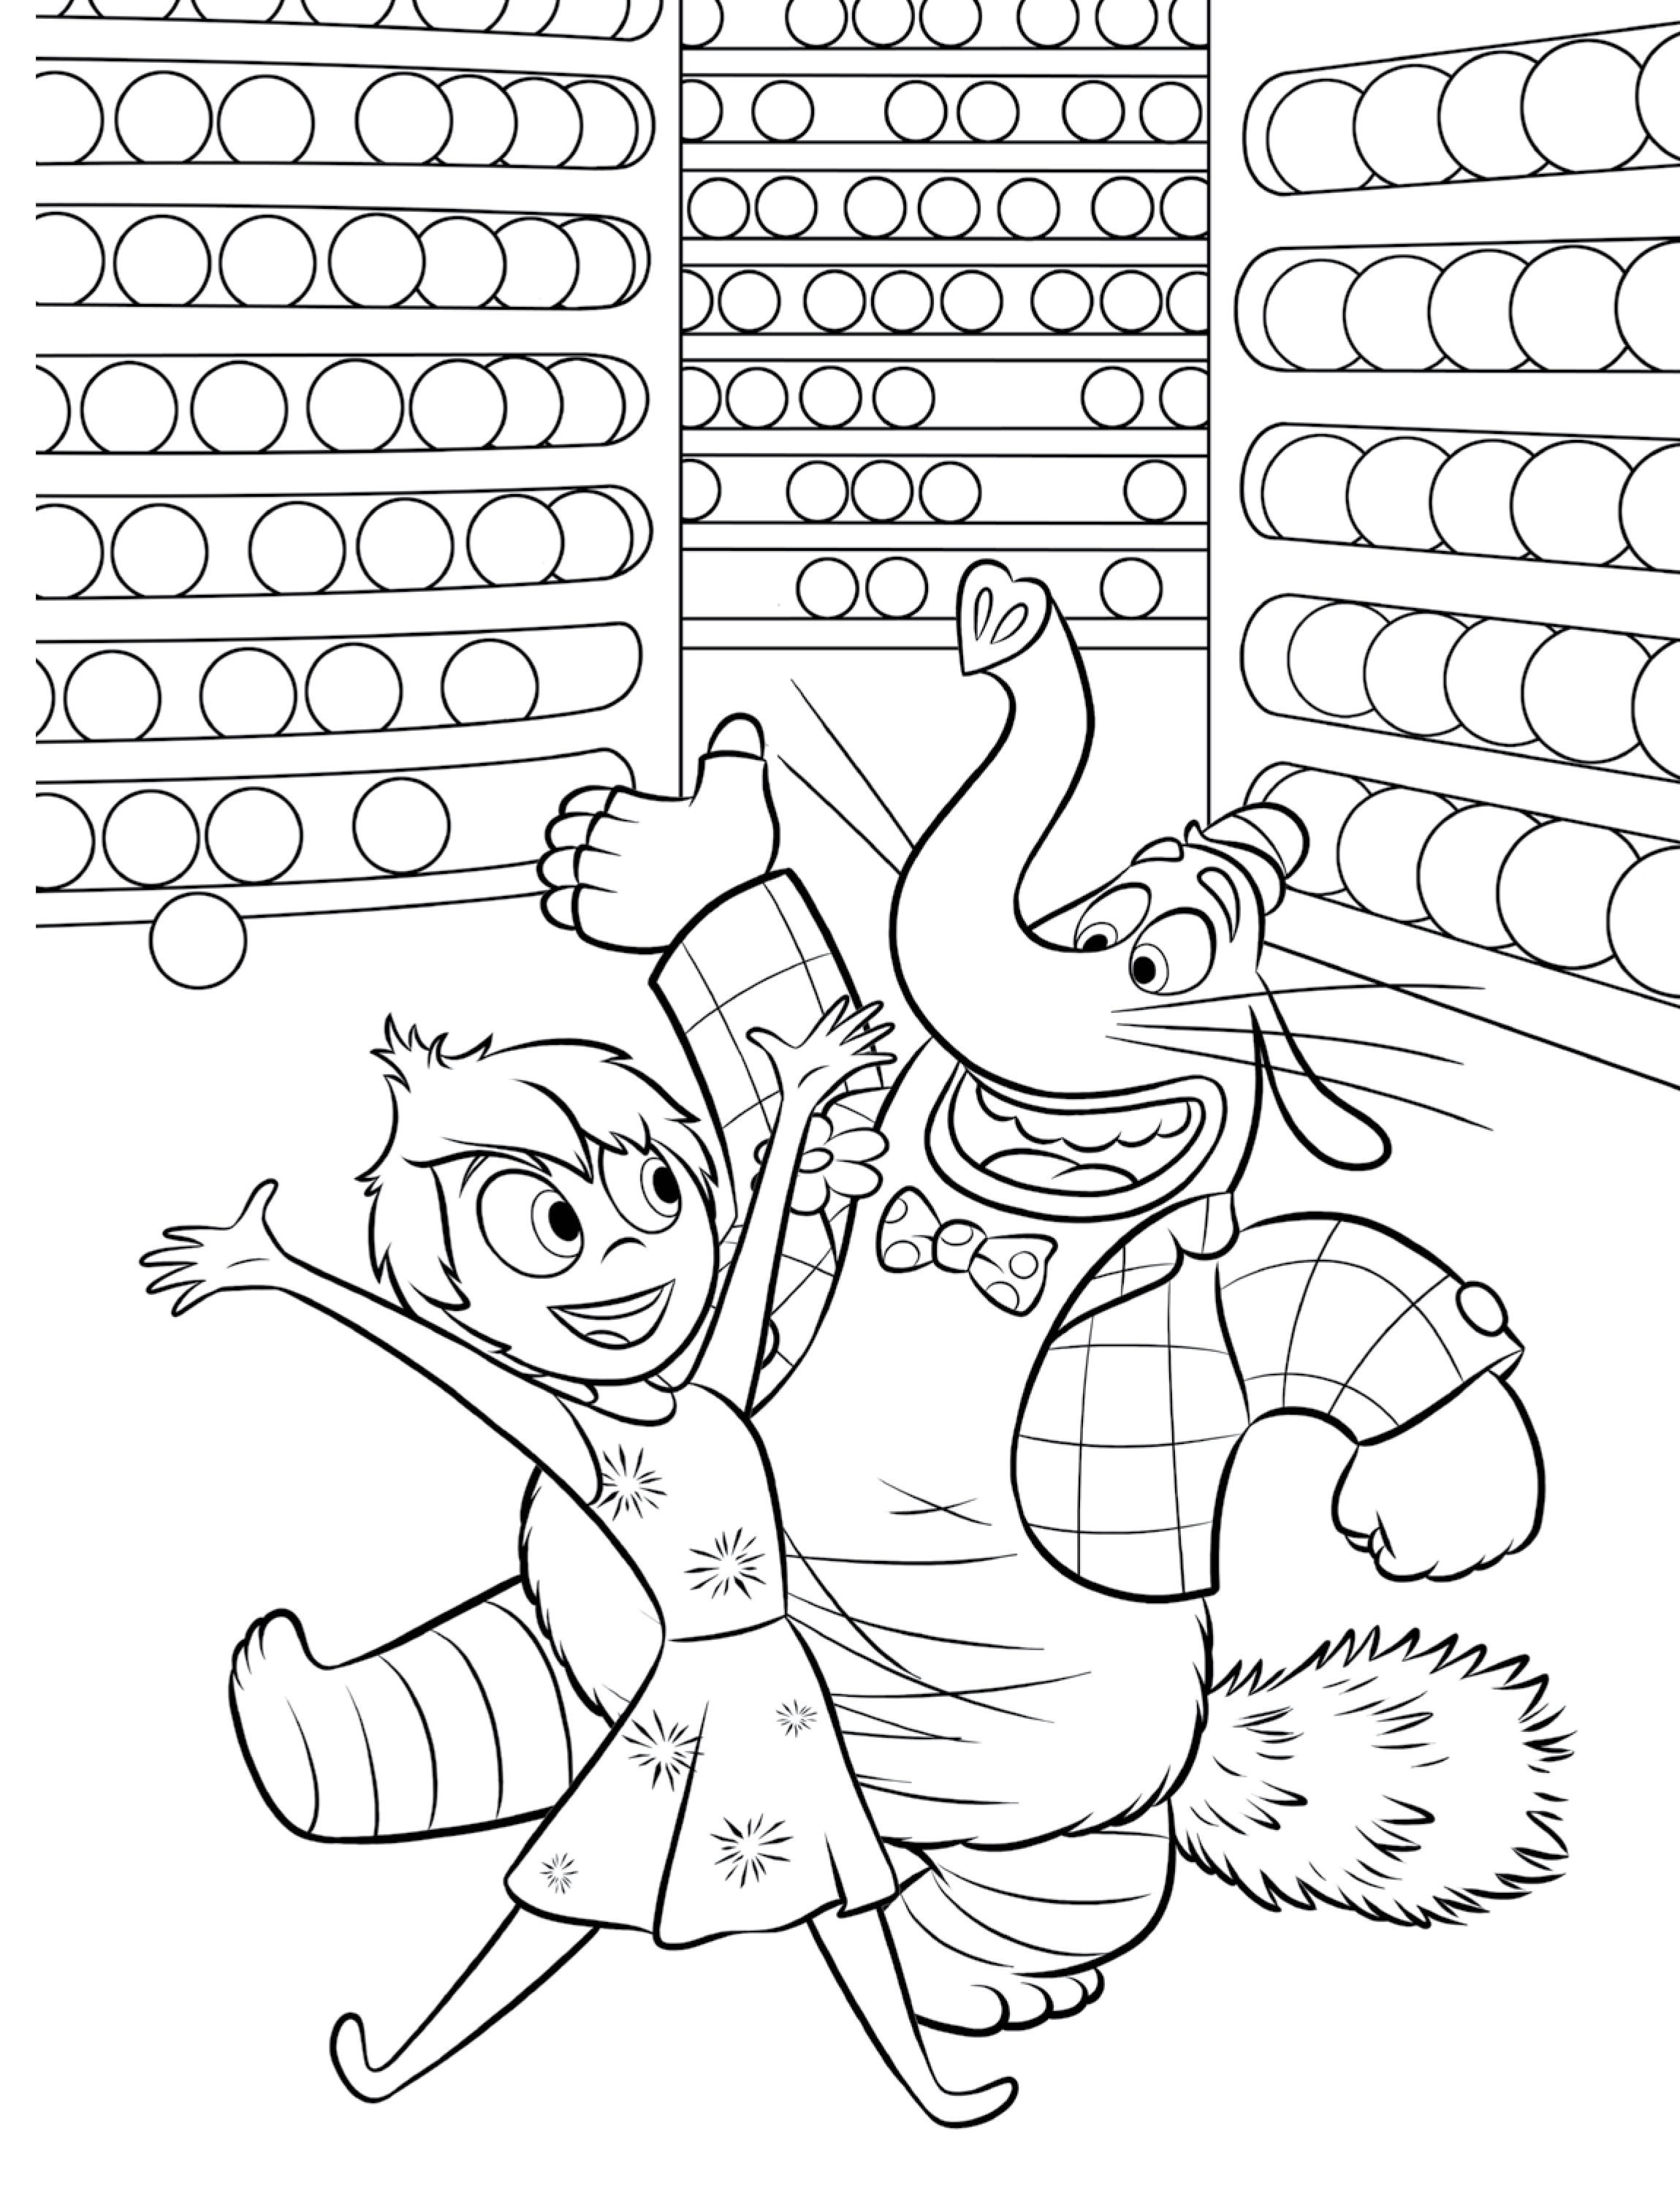 Inside out coloring pages riley - Inside Out Coloring Page